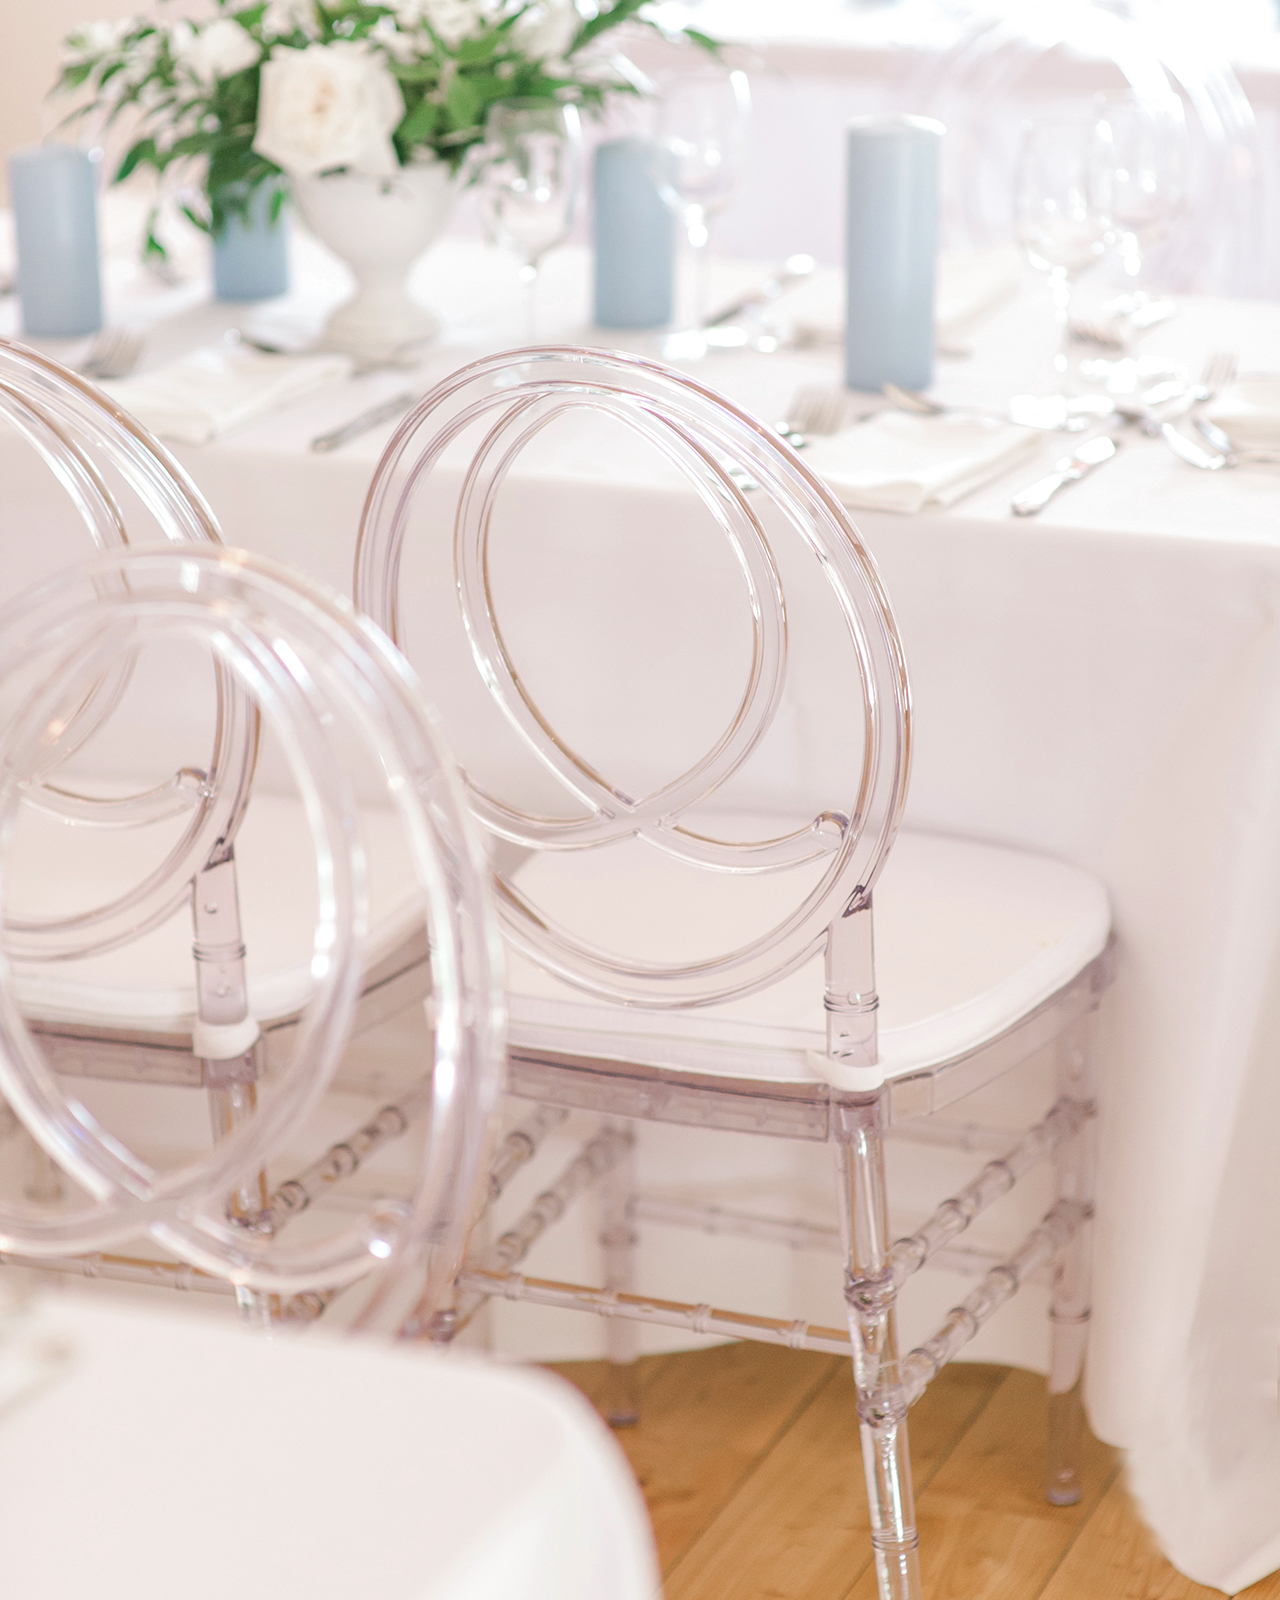 Acrylic chairs white cushions white table cloths